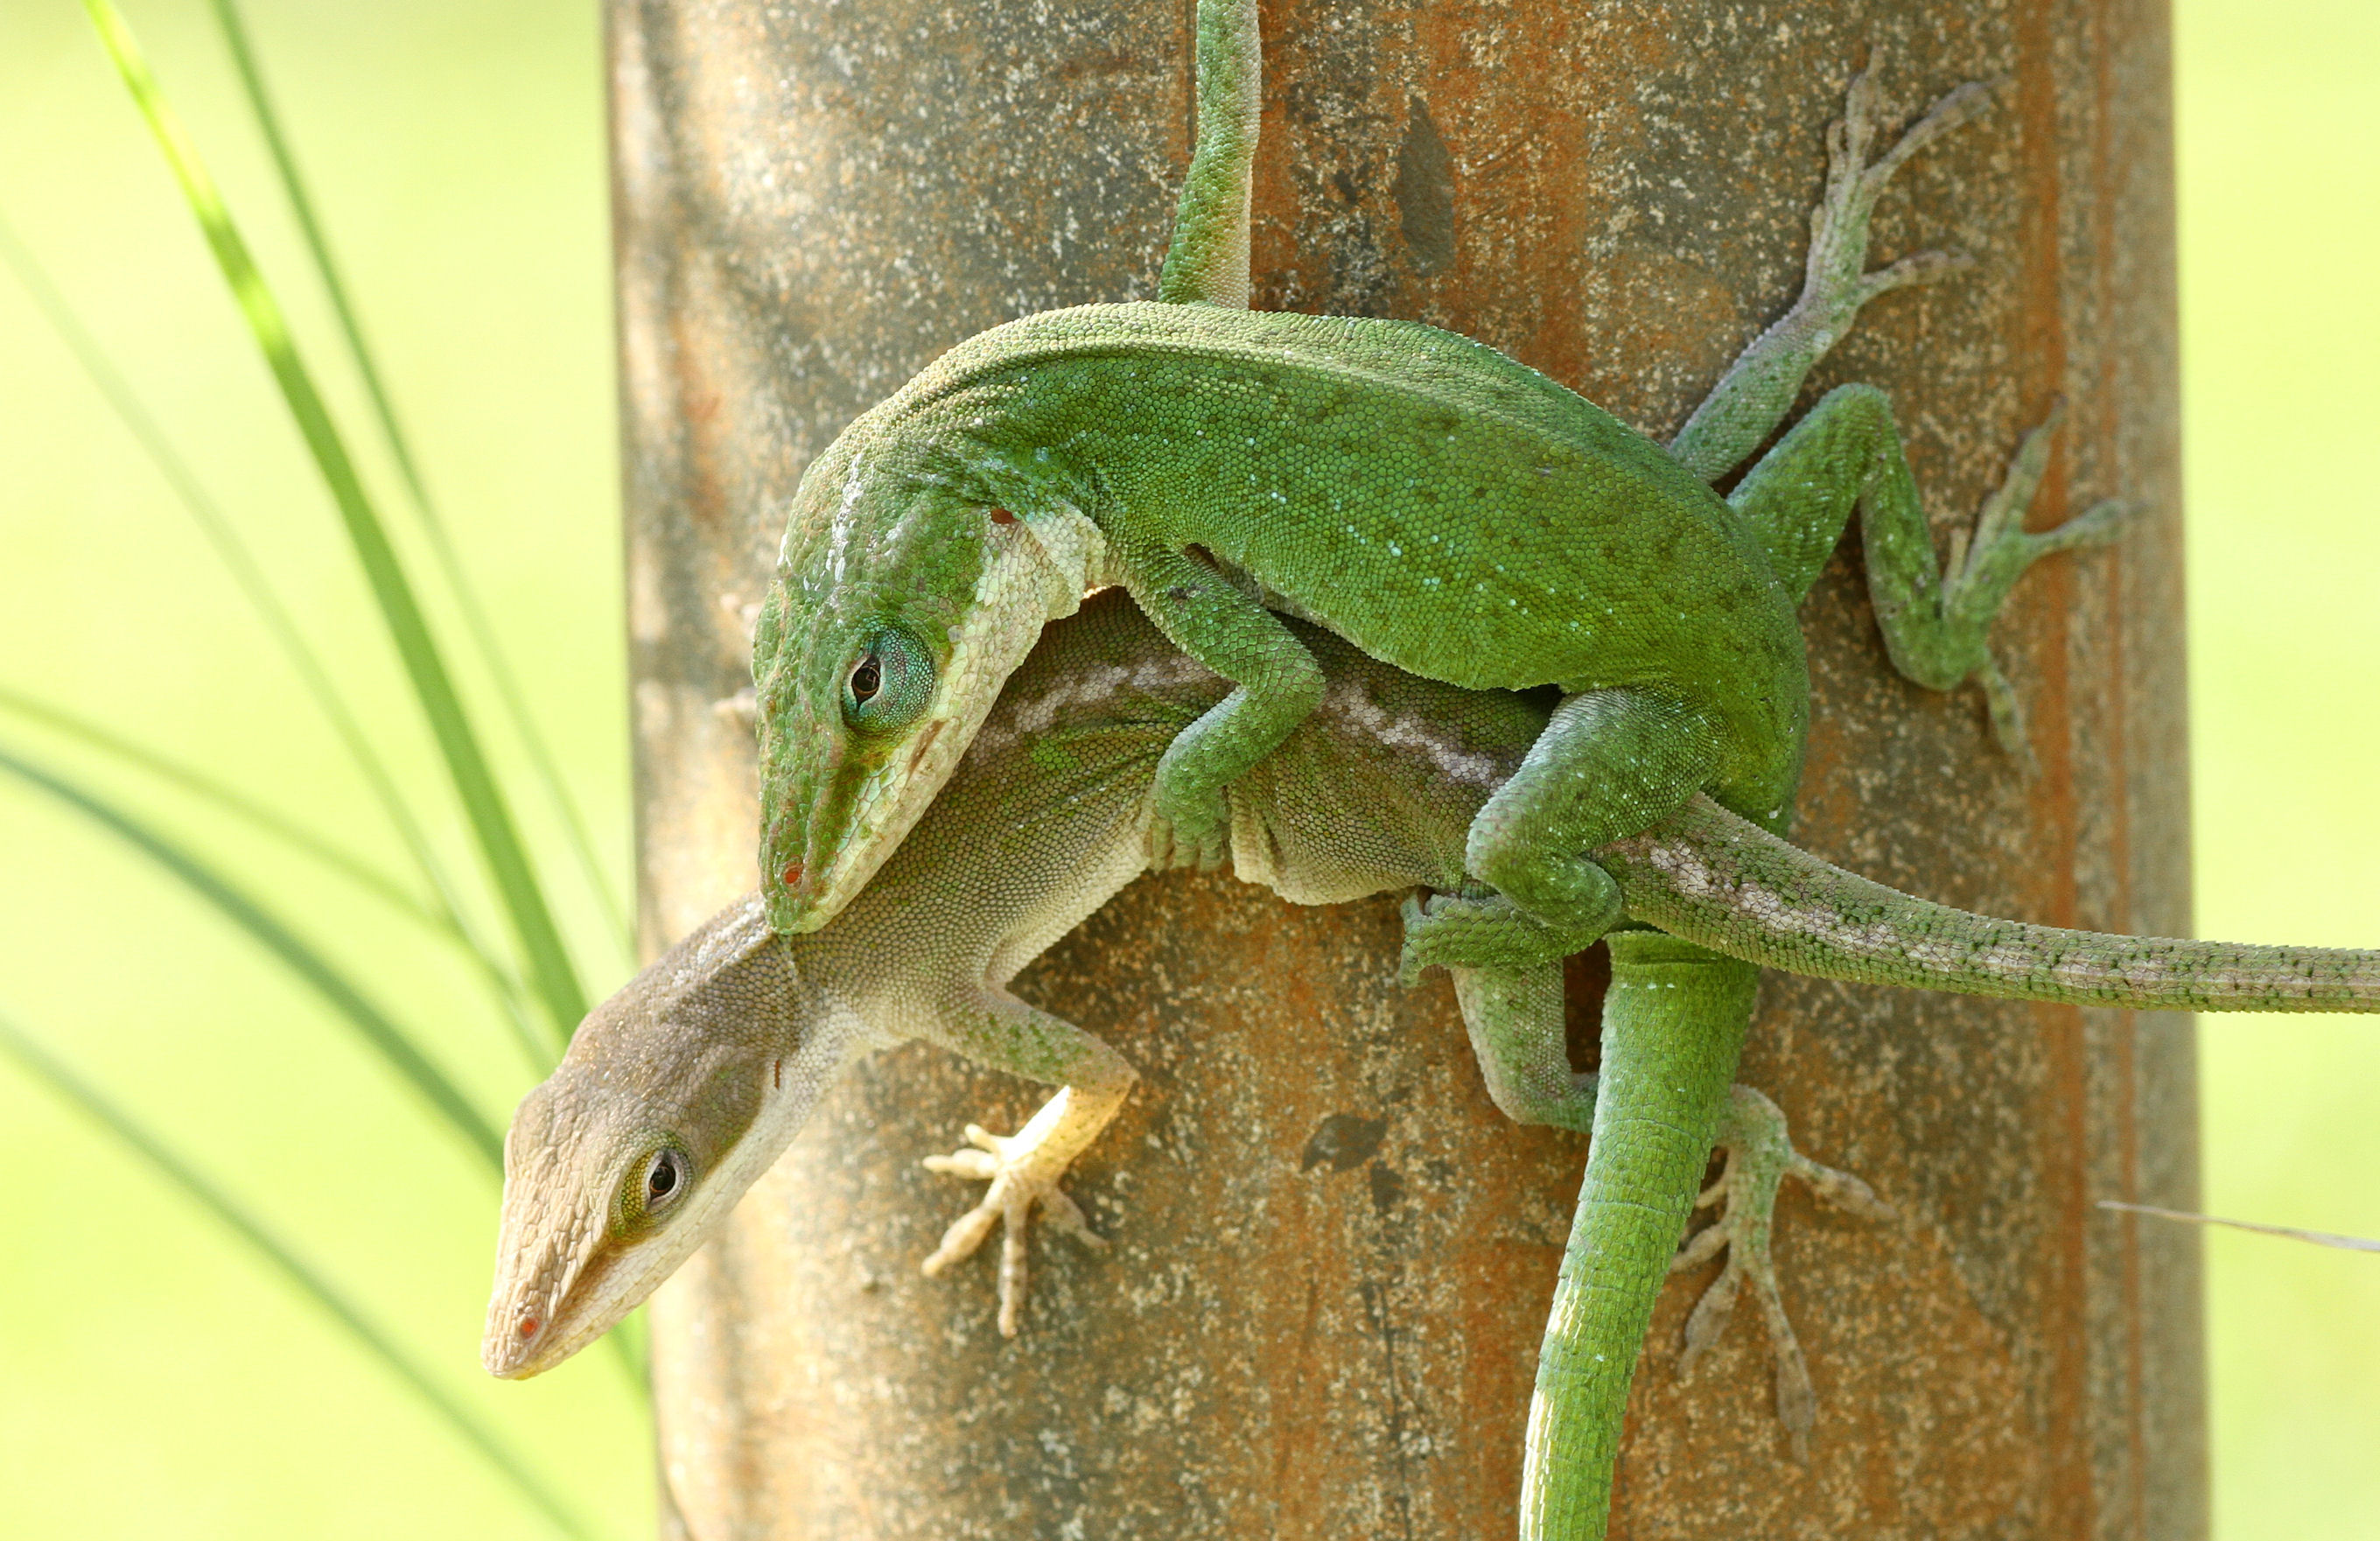 sex chromosomes conserved across anoles and beyond